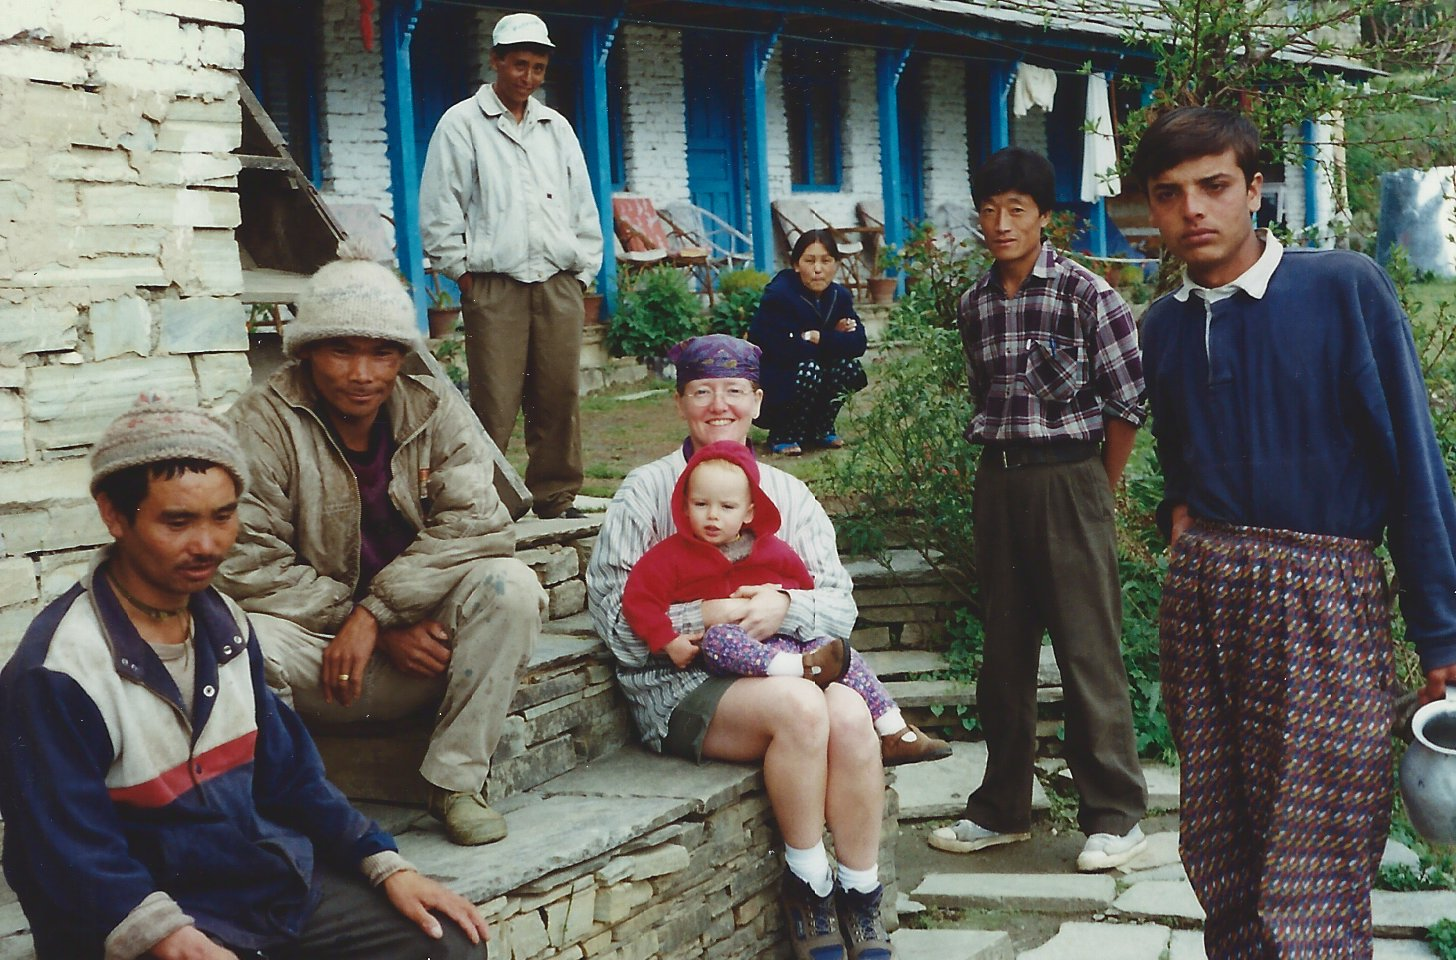 """That's me and baby Lily (17 months) in Nepal with our Nepalese """"family."""" My knee was working fine at this point. My trusty walking stick. It would come to me later in our journey, when we still had not reached our destination and my strength of will was beginning to falter as a result of the pain. These friends and that stick would eventually help get me to the top of the Annapurna Sanctuary. It was worth every ounce of strain and effort."""